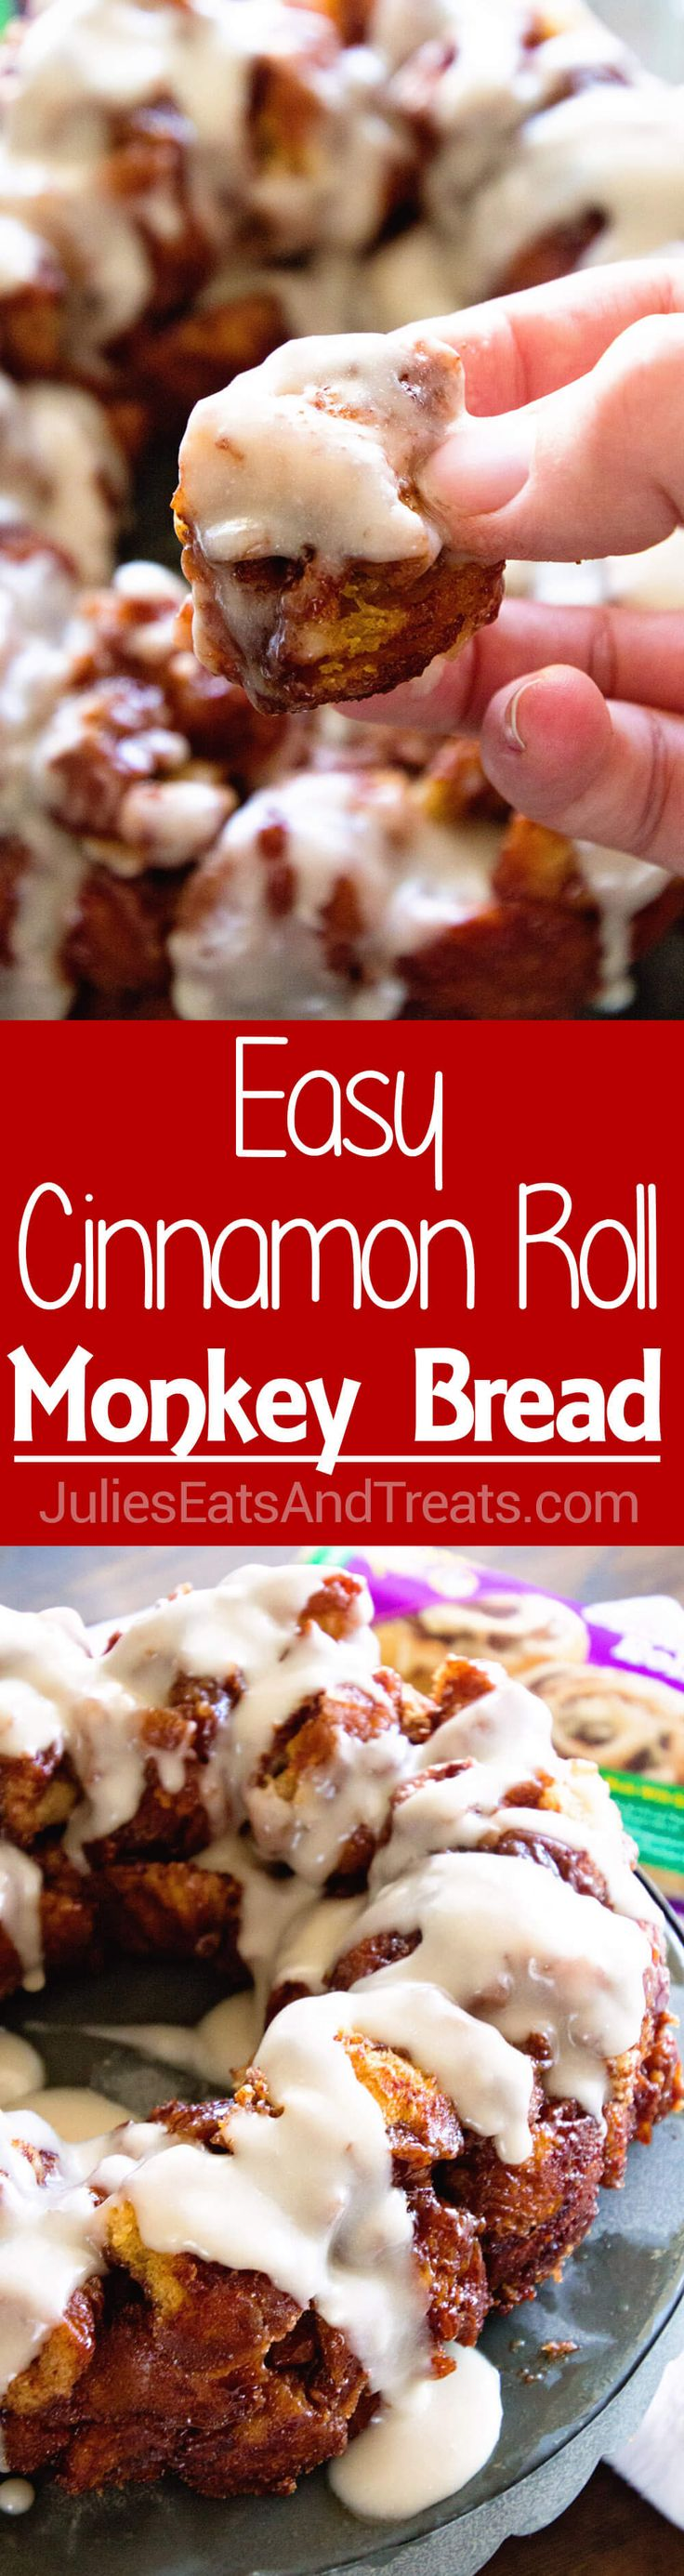 Easy Cinnamon Roll Monkey Bread ~ Quick and Easy Monkey Bread Made with Cinnamon Rolls and Icing! Perfect Easy Breakfast Treat! via @julieseats